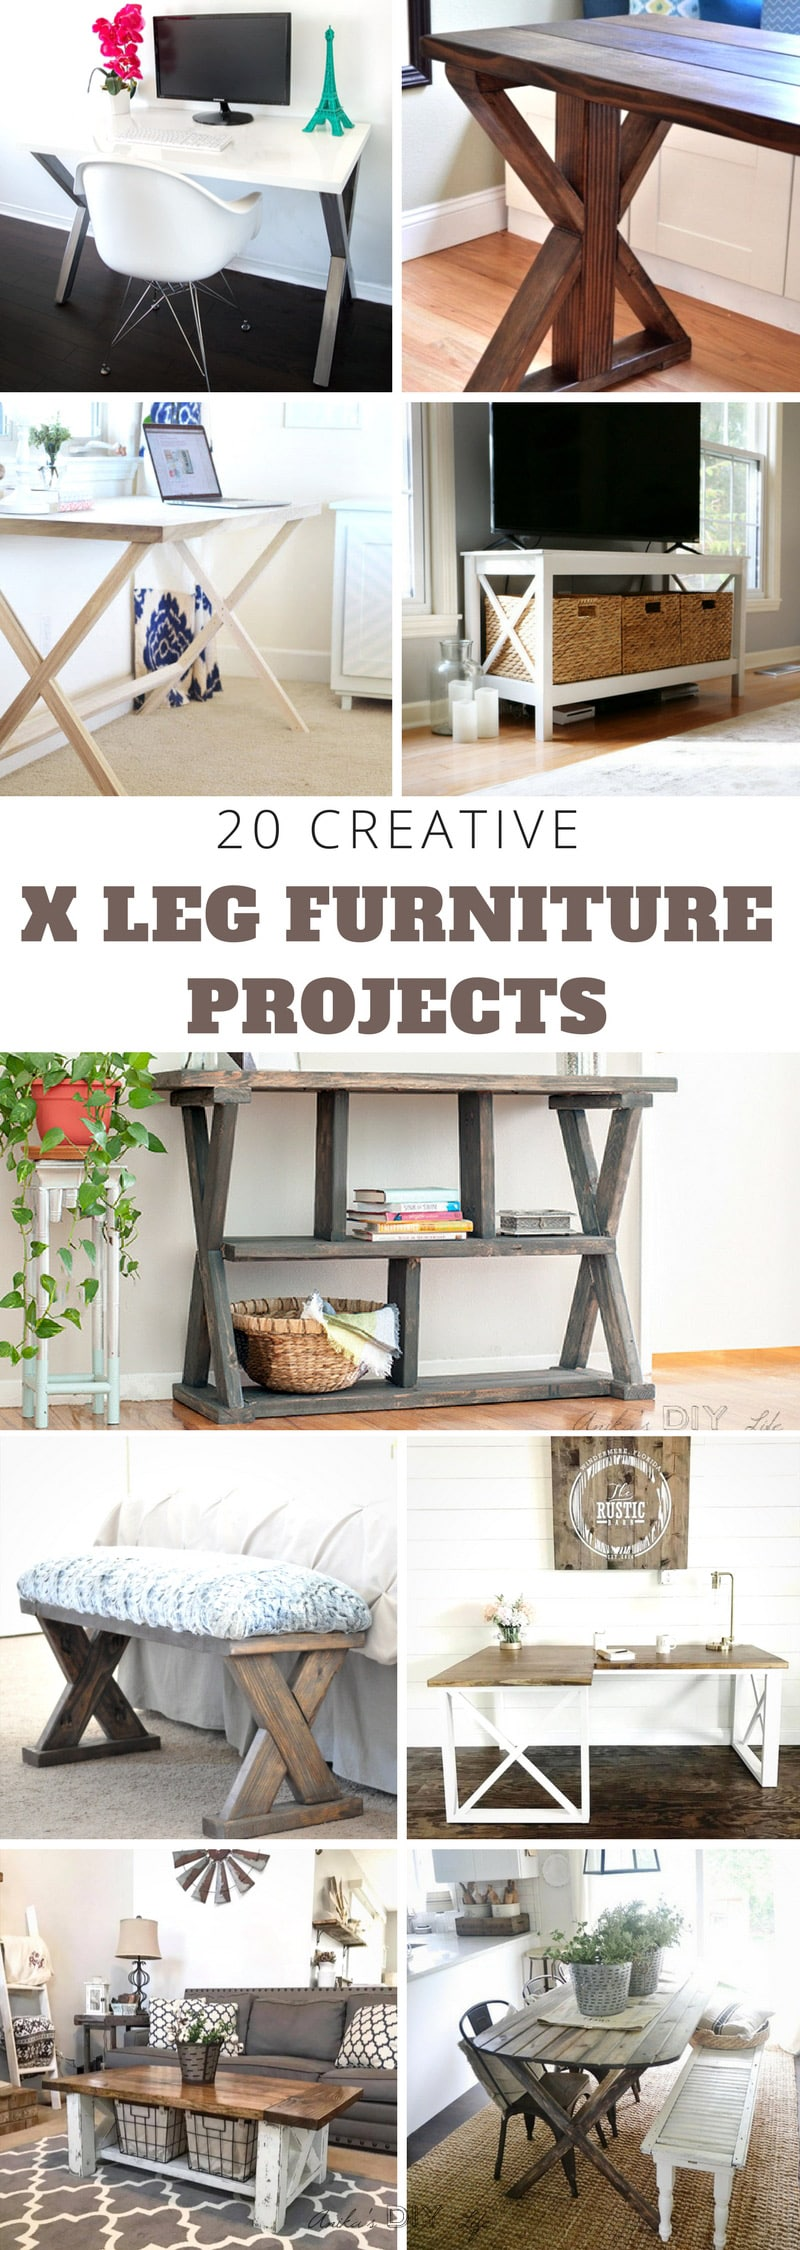 Diy Table Leg Ideas 20 Diy X Leg Furniture Project Ideas Anika S Diy Life